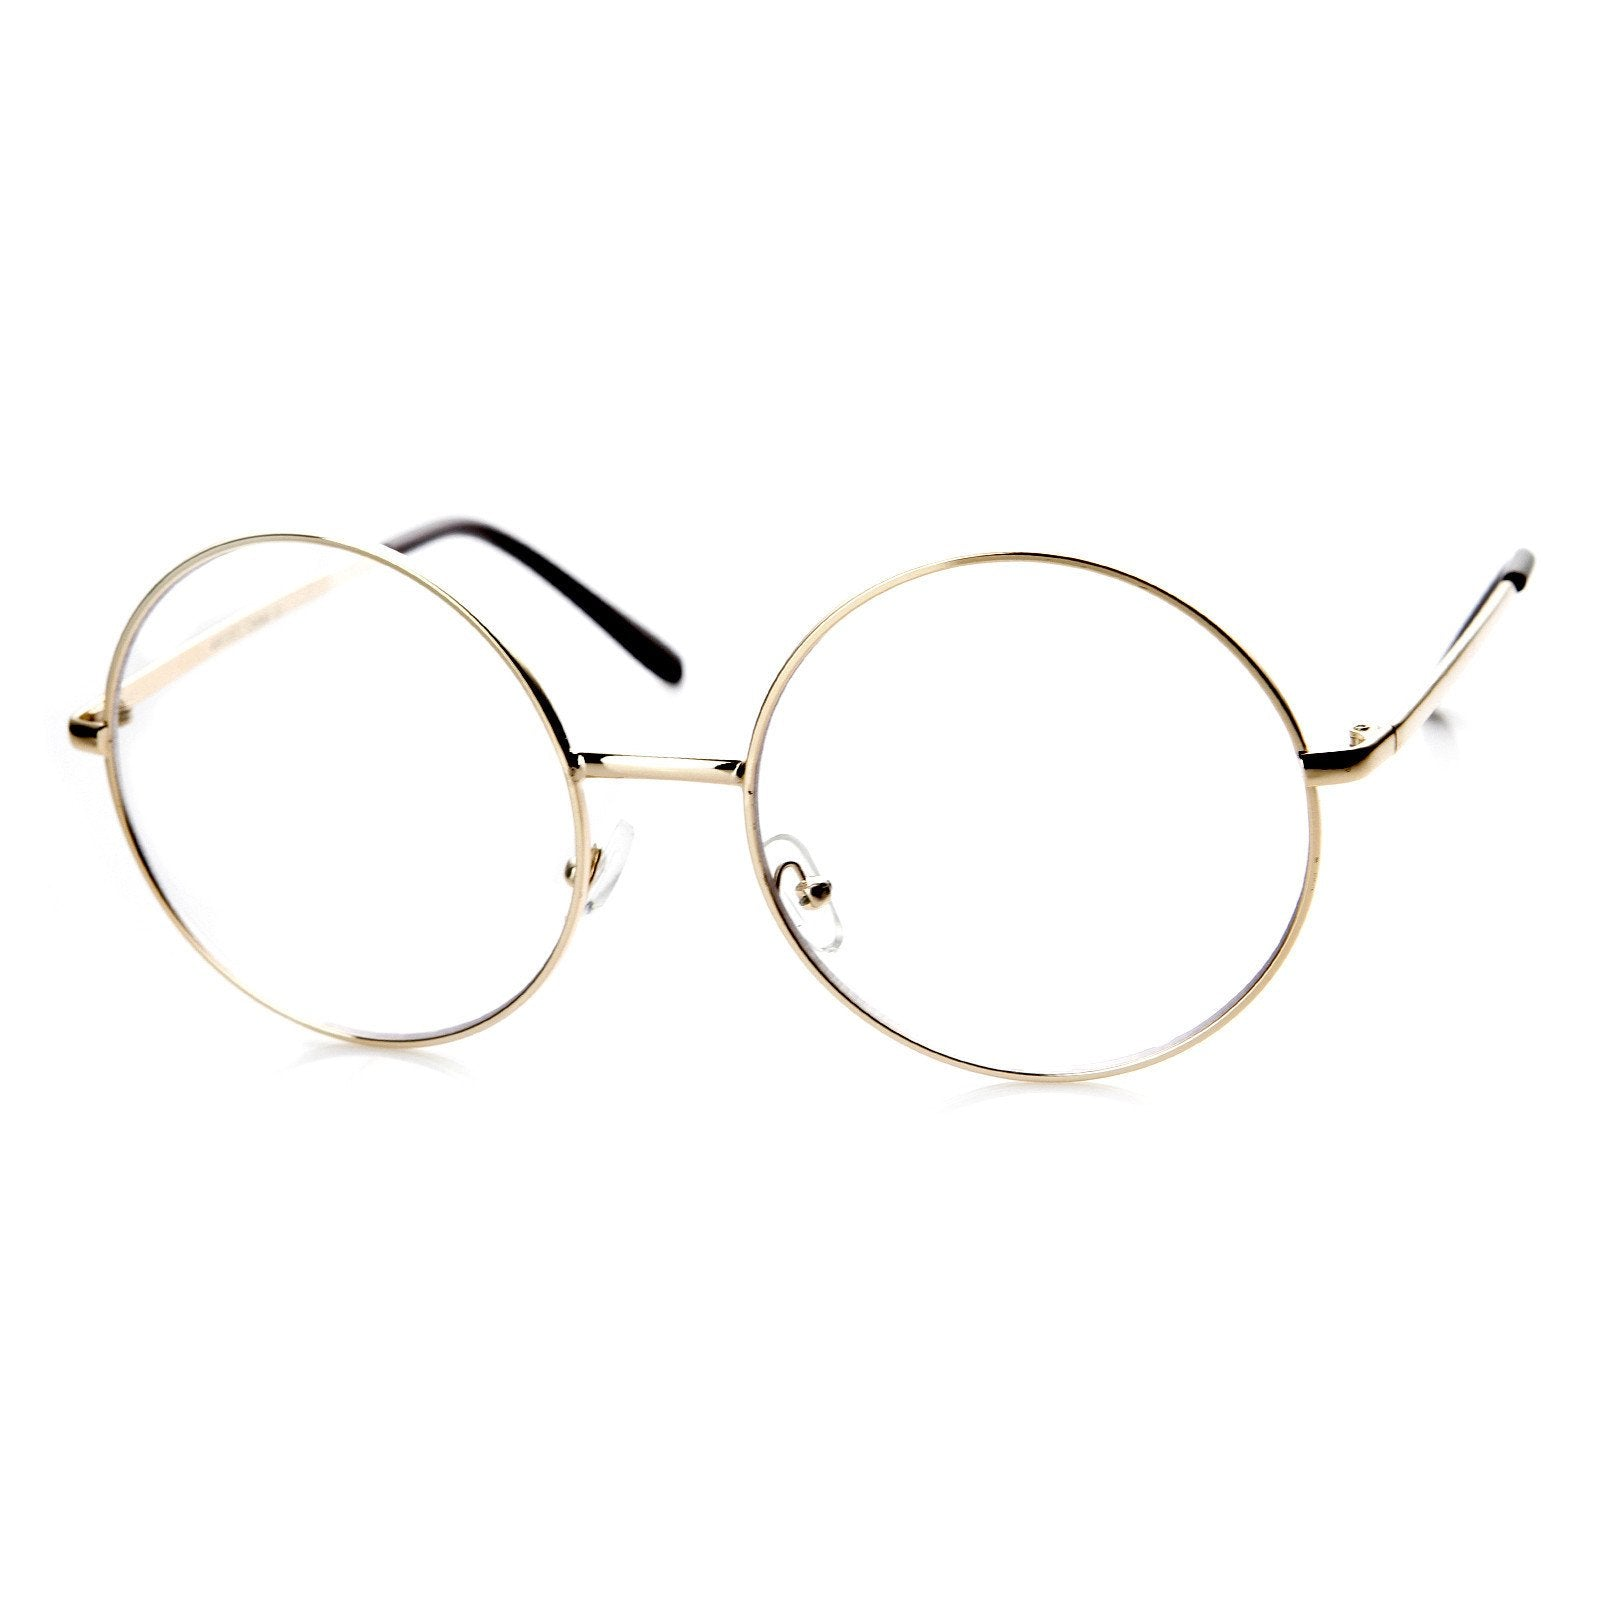 e5a9b8e5874 Vintage Extra Large Round Metal Clear Lens Glasses - zeroUV